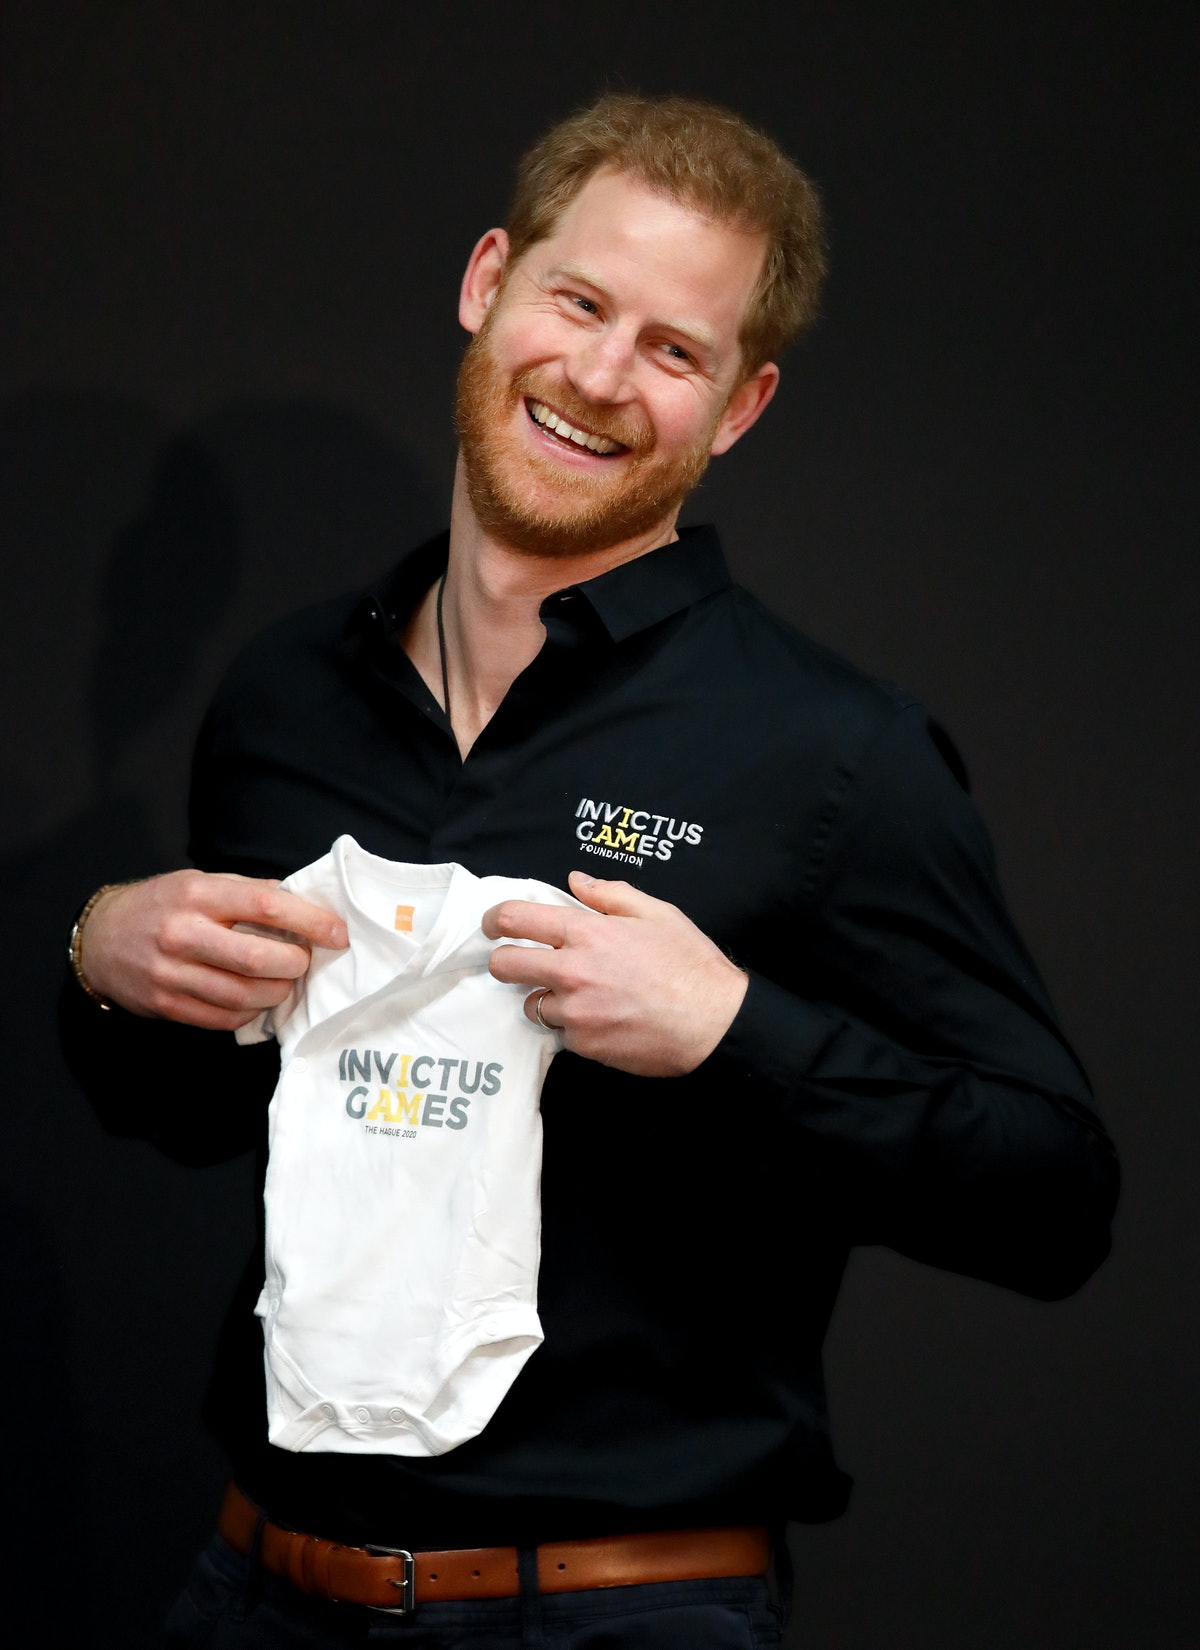 THE HAGUE, NETHERLANDS - MAY 09: (EMBARGOED FOR PUBLICATION IN UK NEWSPAPERS UNTIL 24 HOURS AFTER CREATE DATE AND TIME) Prince Harry, Duke of Sussex is presented with an Invictus Games baby grow for his newborn son Archie as he visits Sportcampus Zuiderpark as part of a programme of events to mark the official launch of the Invictus Games The Hague 2020 on May 9, 2019 in The Hague, Netherlands. (Photo by Max Mumby/Indigo/Getty Images)